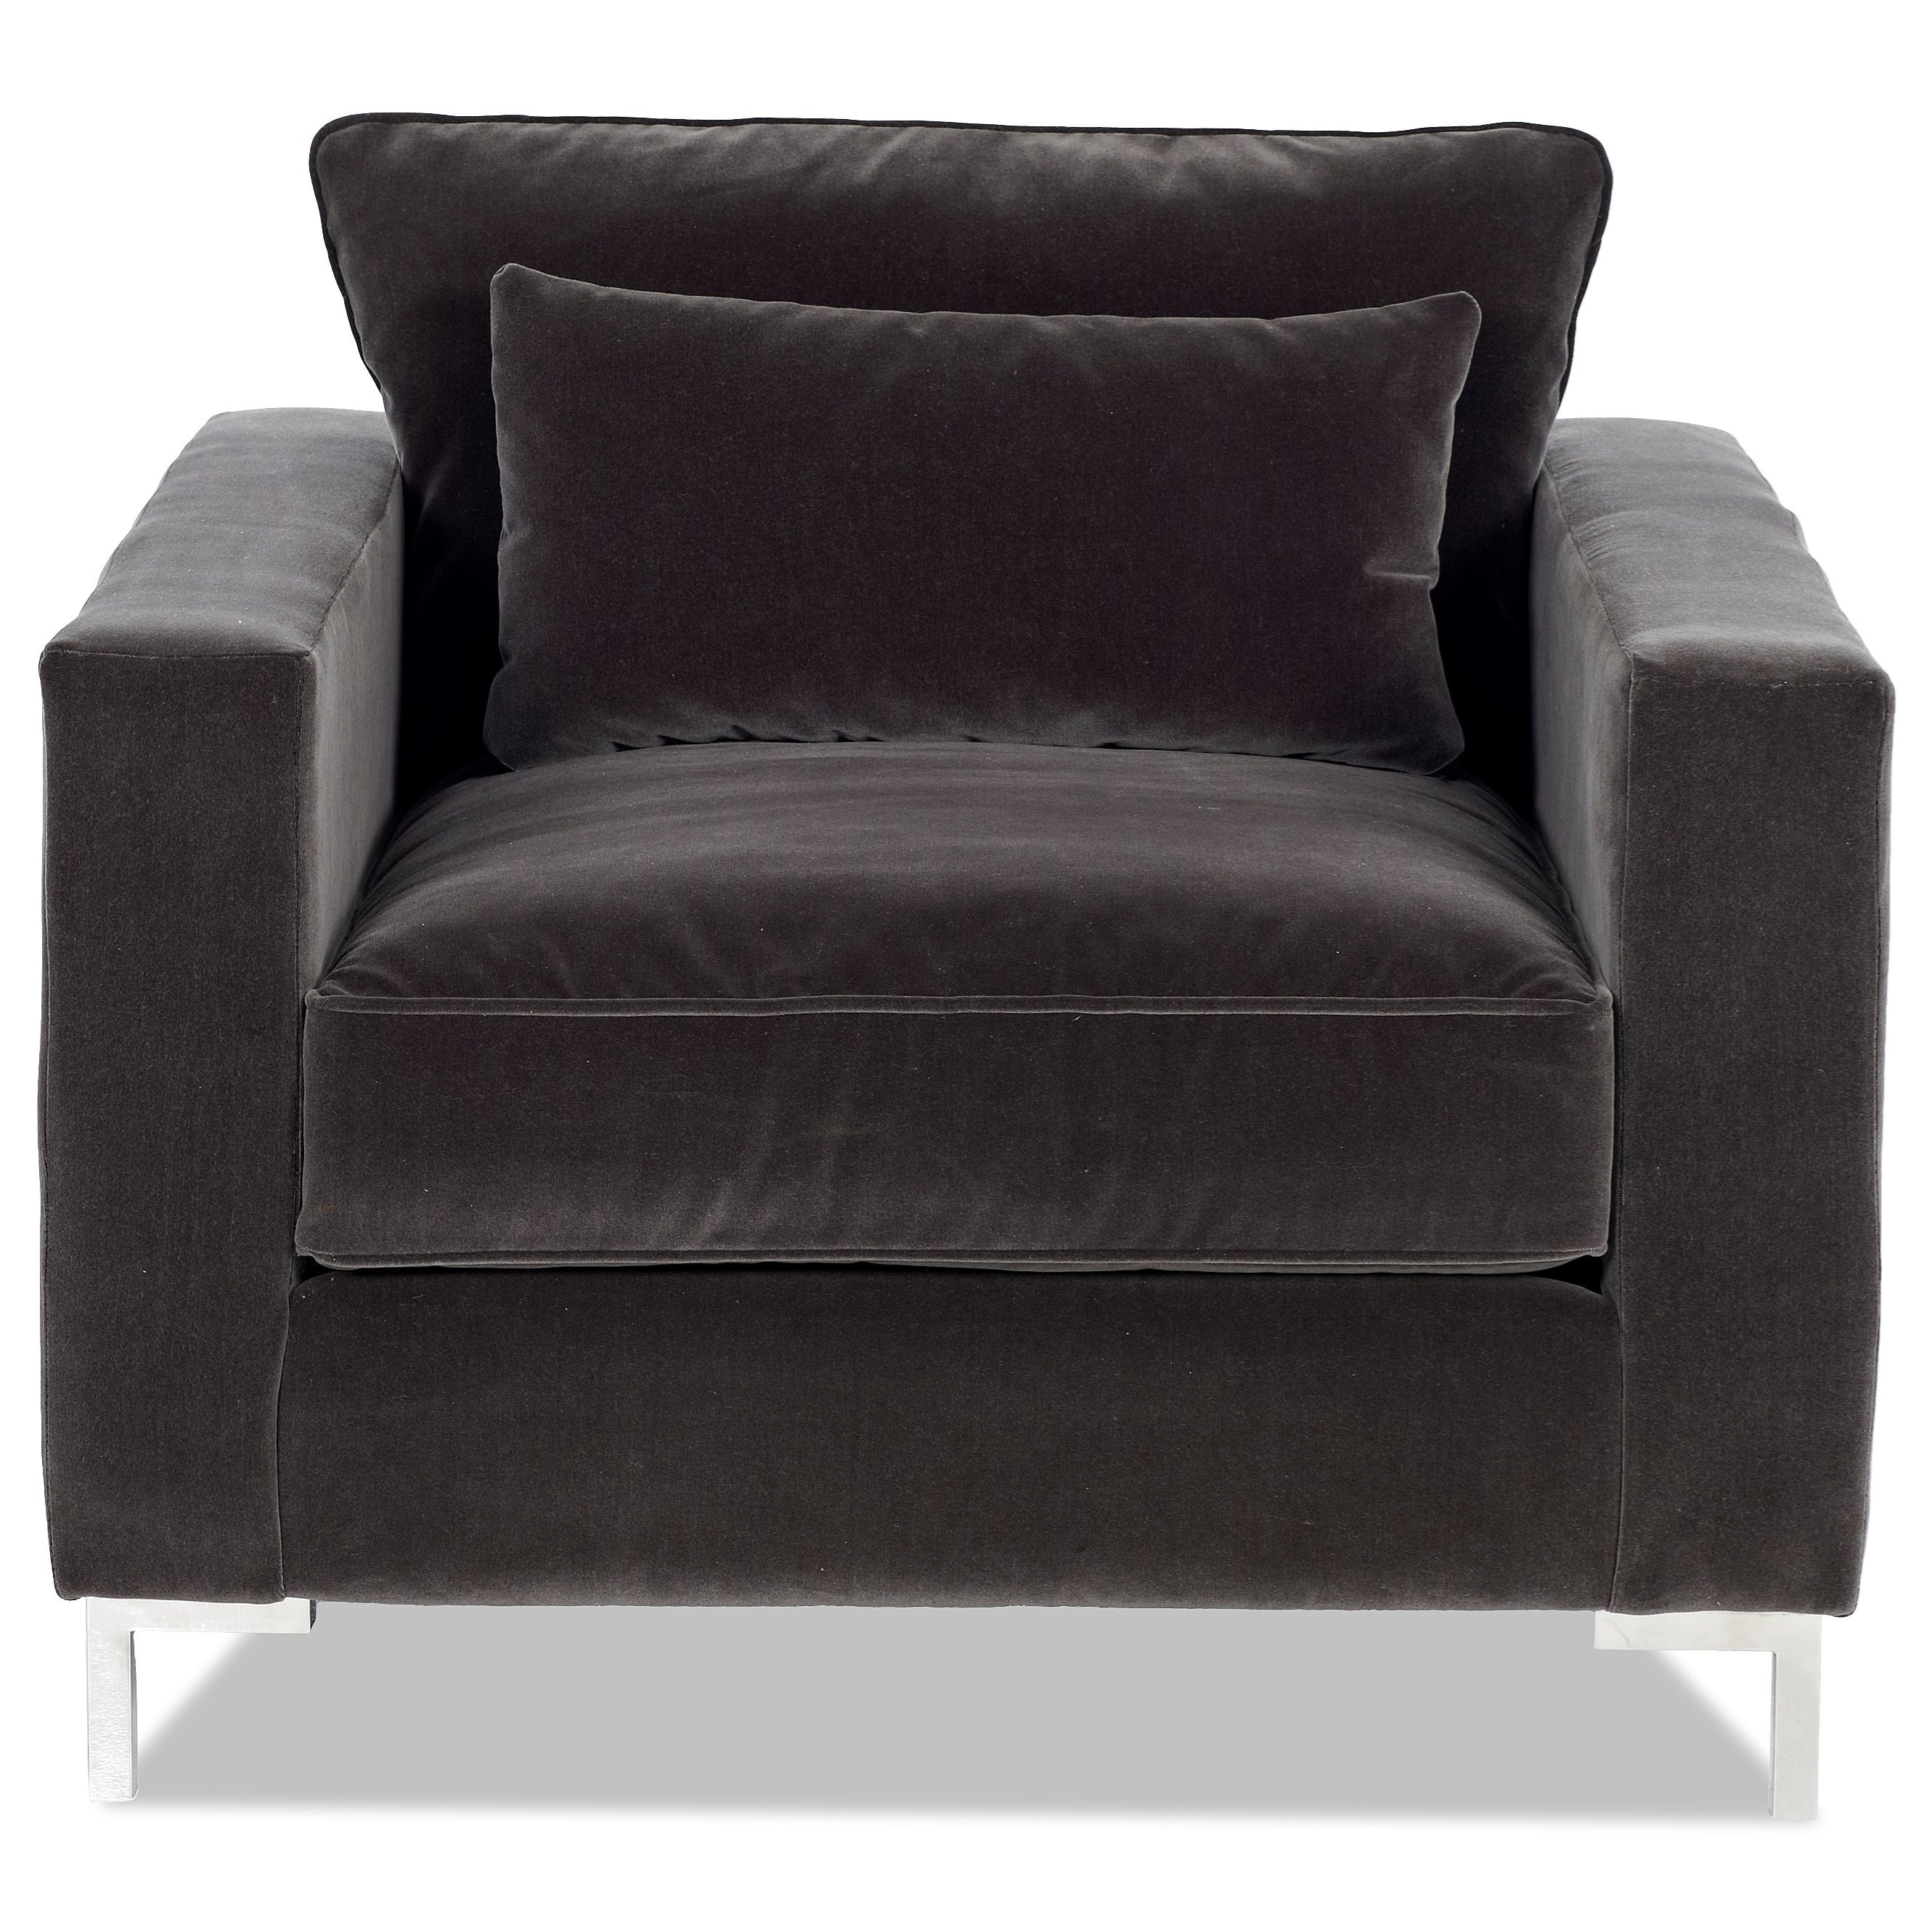 Klaussner Spencer Chair   Item Number: LD1100 C LOMBARDY GREY